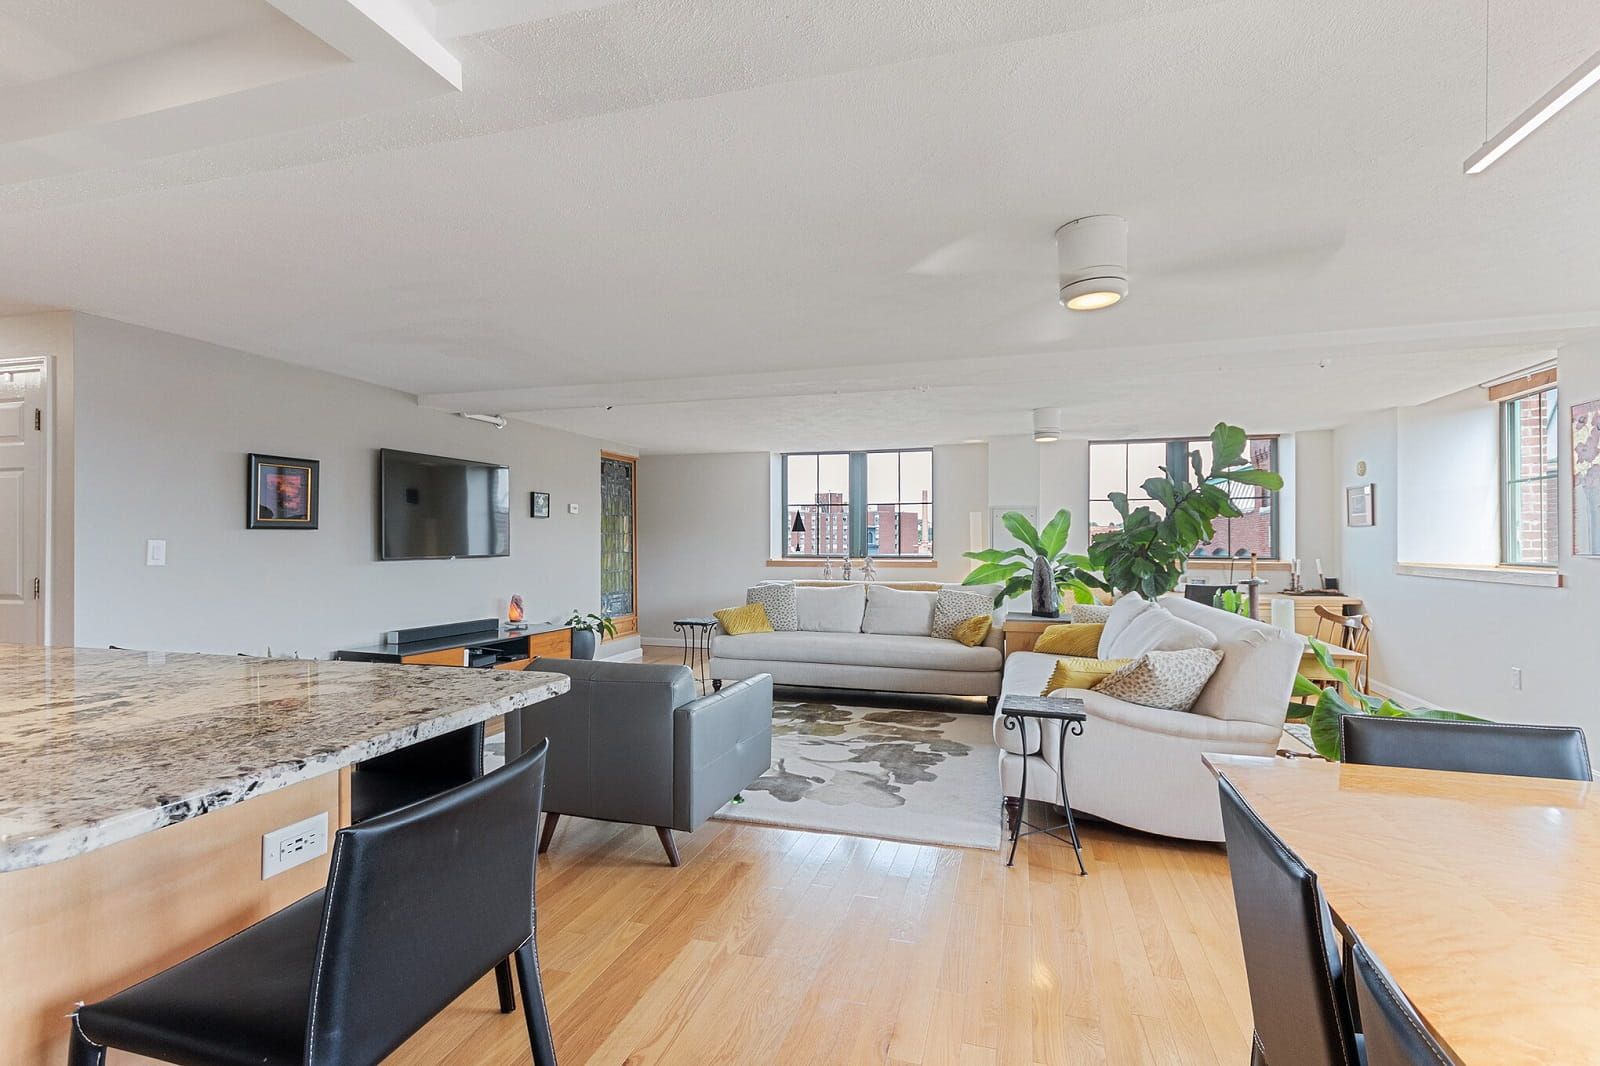 Real Estate Photography in Lowell - MA - USA - Living Area View